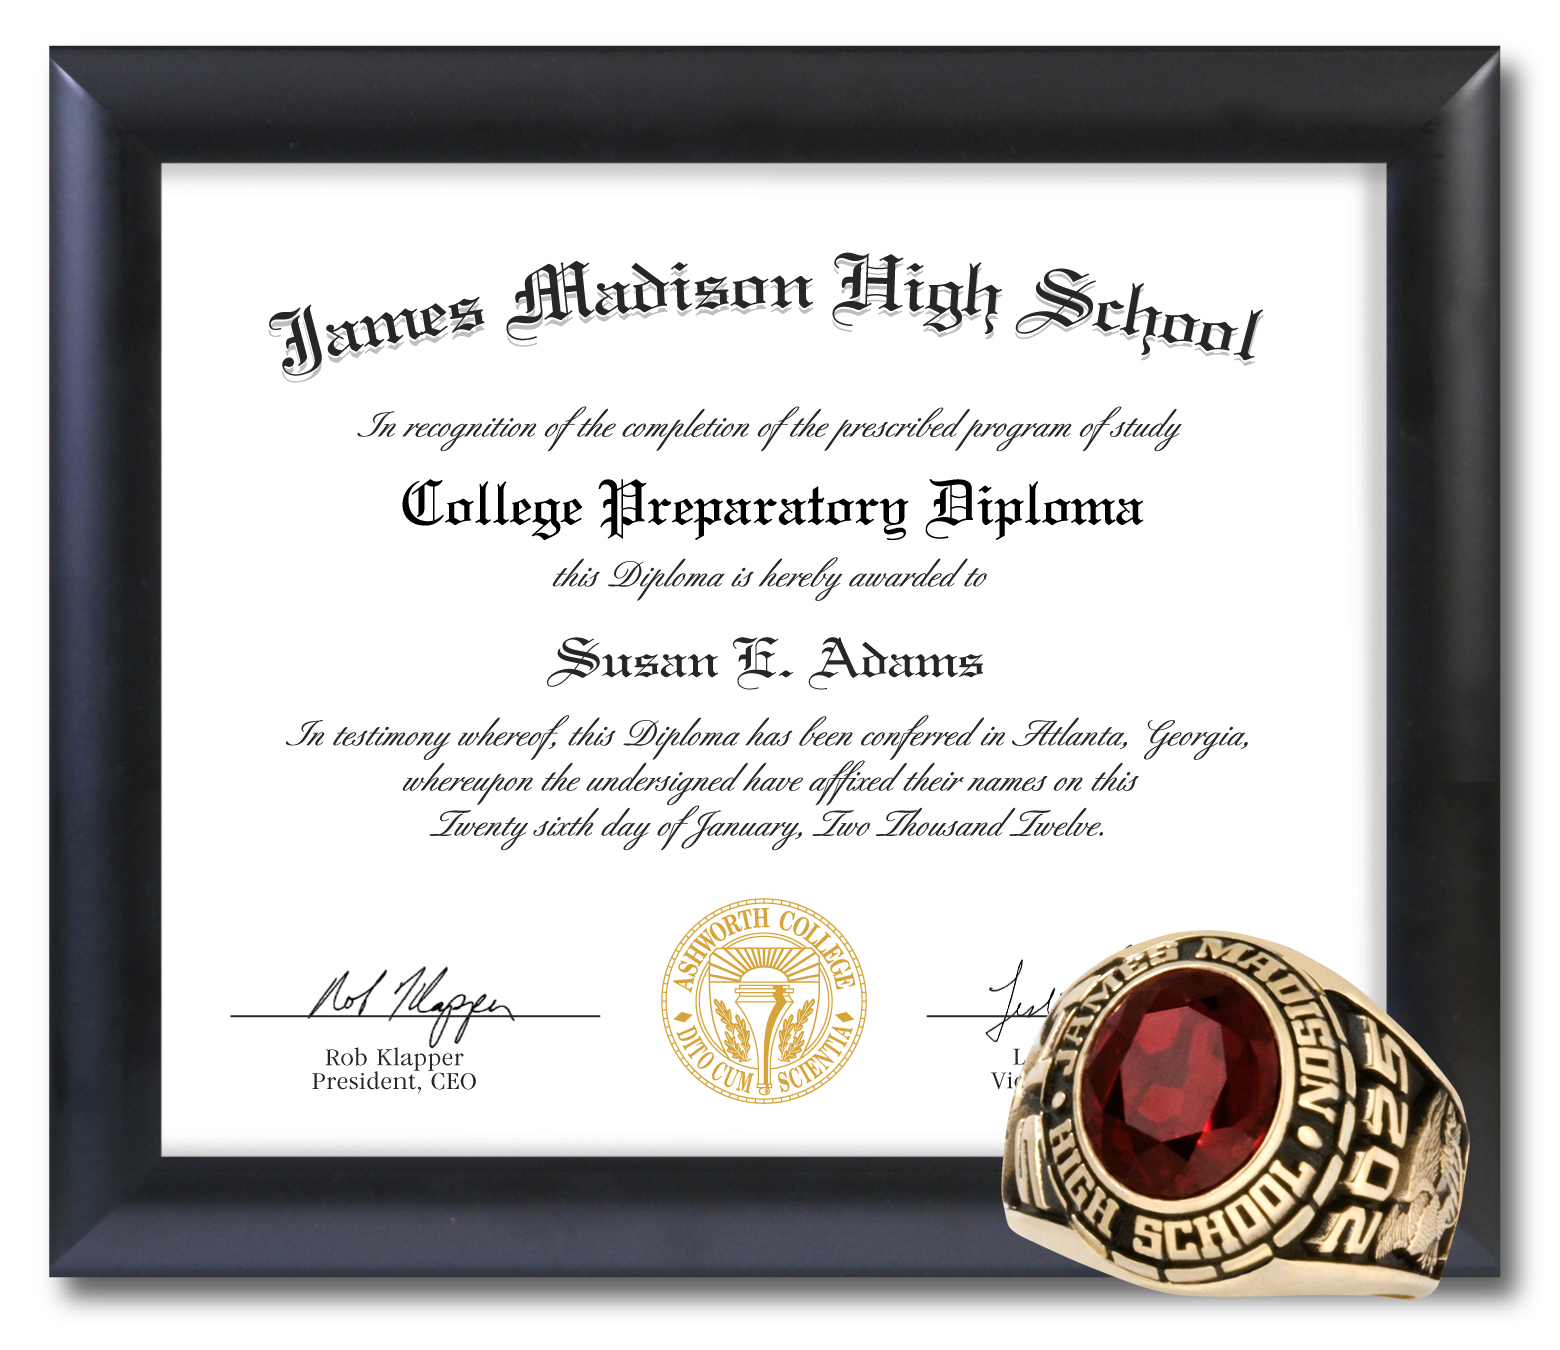 James Madison Online High School Login >> James Madison High School Making It Easier For Dropouts To Drop In